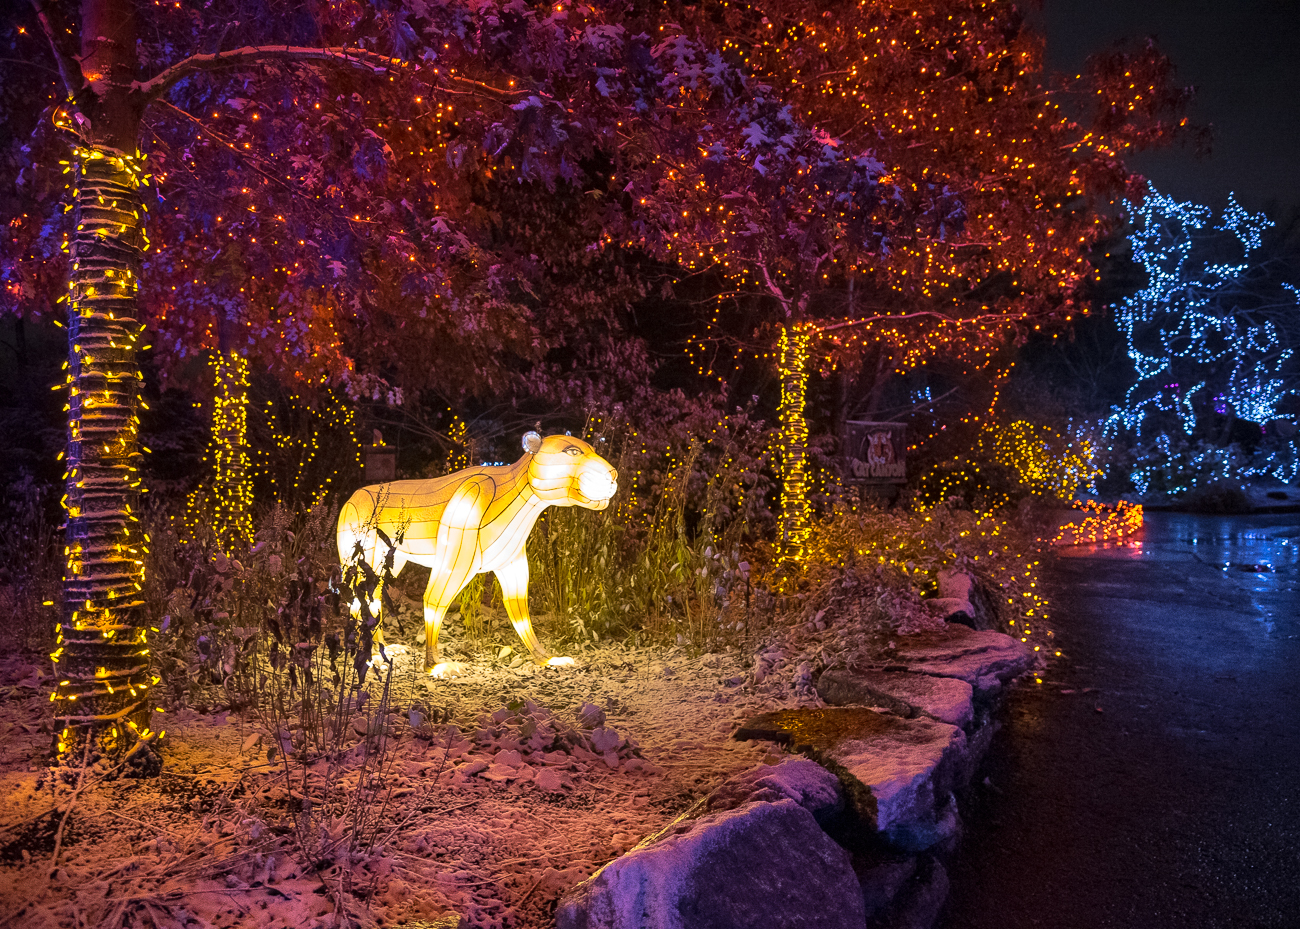 The 36th annual PNC Festival of Lights opened November 17 and runs through January 1. The zoo is alight with three million LED bulbs and a handful of animal lanterns sprinkled throughout the park. Going on a rainy or snowy night means far less crowds than usual, as well as gorgeous reflected light off the wet ground. / Image: Phil Armstrong, Cincinnati Refined // Published: 12.3.18